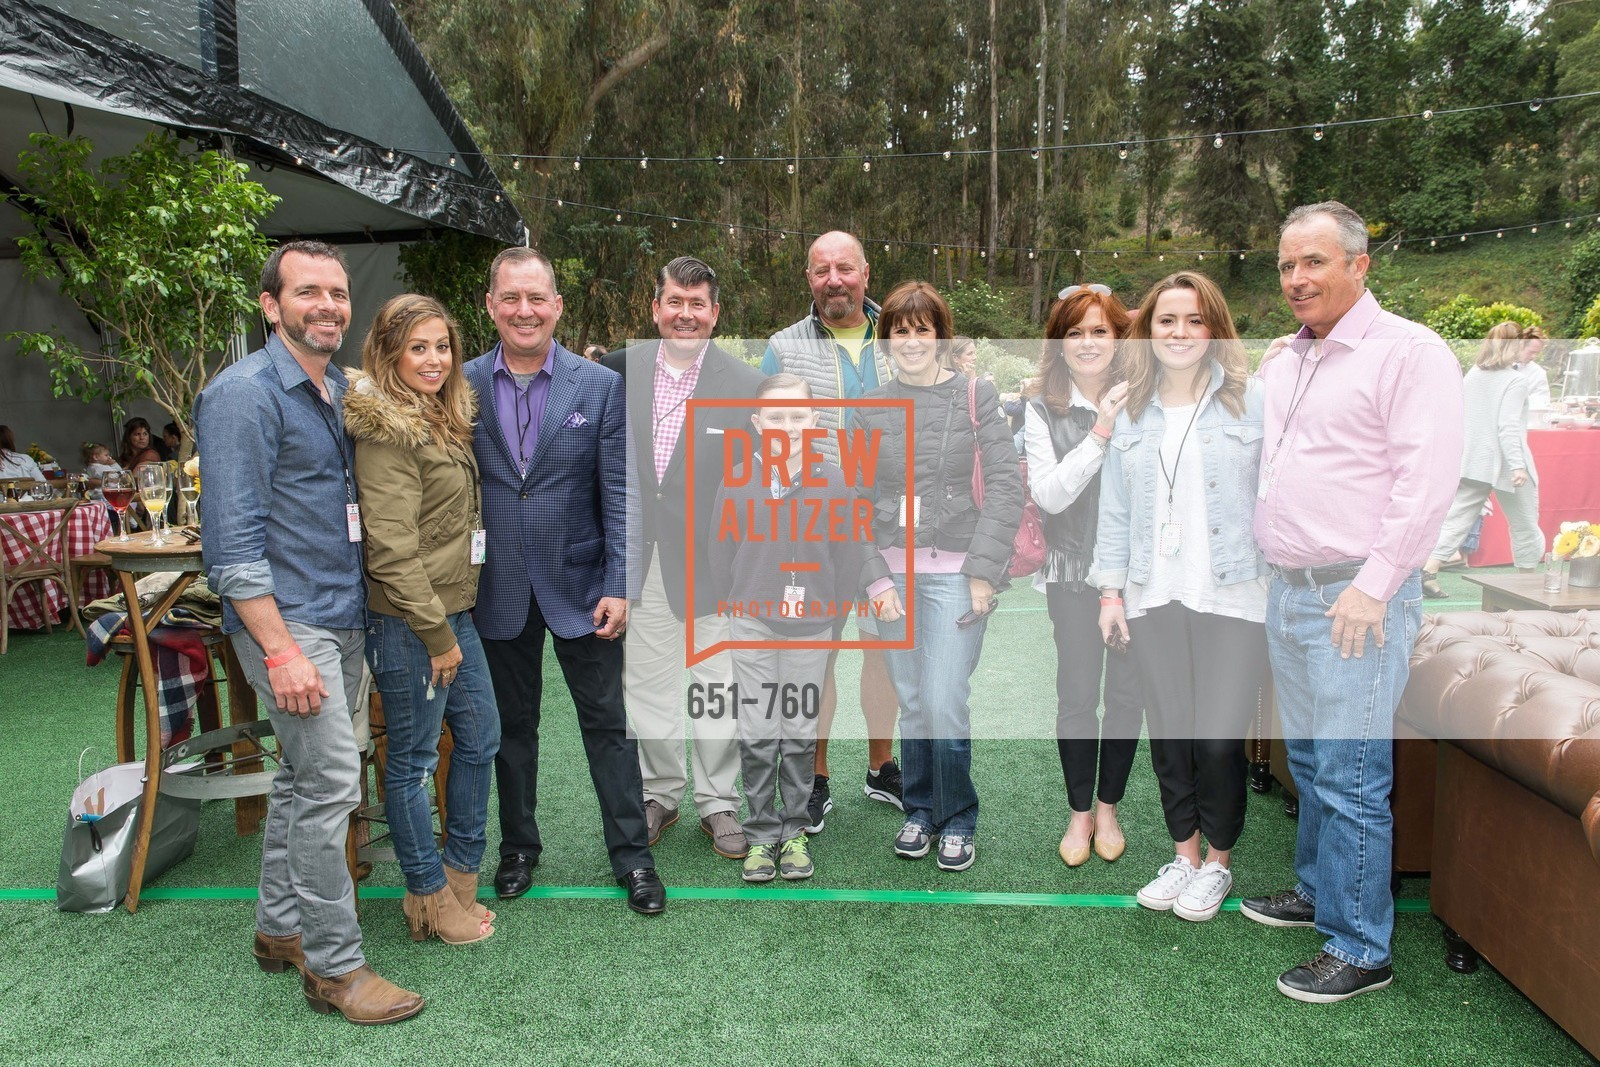 Beau Roy, Shannon Blunden, Mike Genoshe, Alan Morrell, Tim Morrell, John Mino, Terri Mino, Theresa Spirz, Kelsey Spirz, Carl Spirz, The Big Picnic! A Benefit & Concert for STERN GROVE FESTIVAL, US, June 14th, 2015,Drew Altizer, Drew Altizer Photography, full-service agency, private events, San Francisco photographer, photographer california